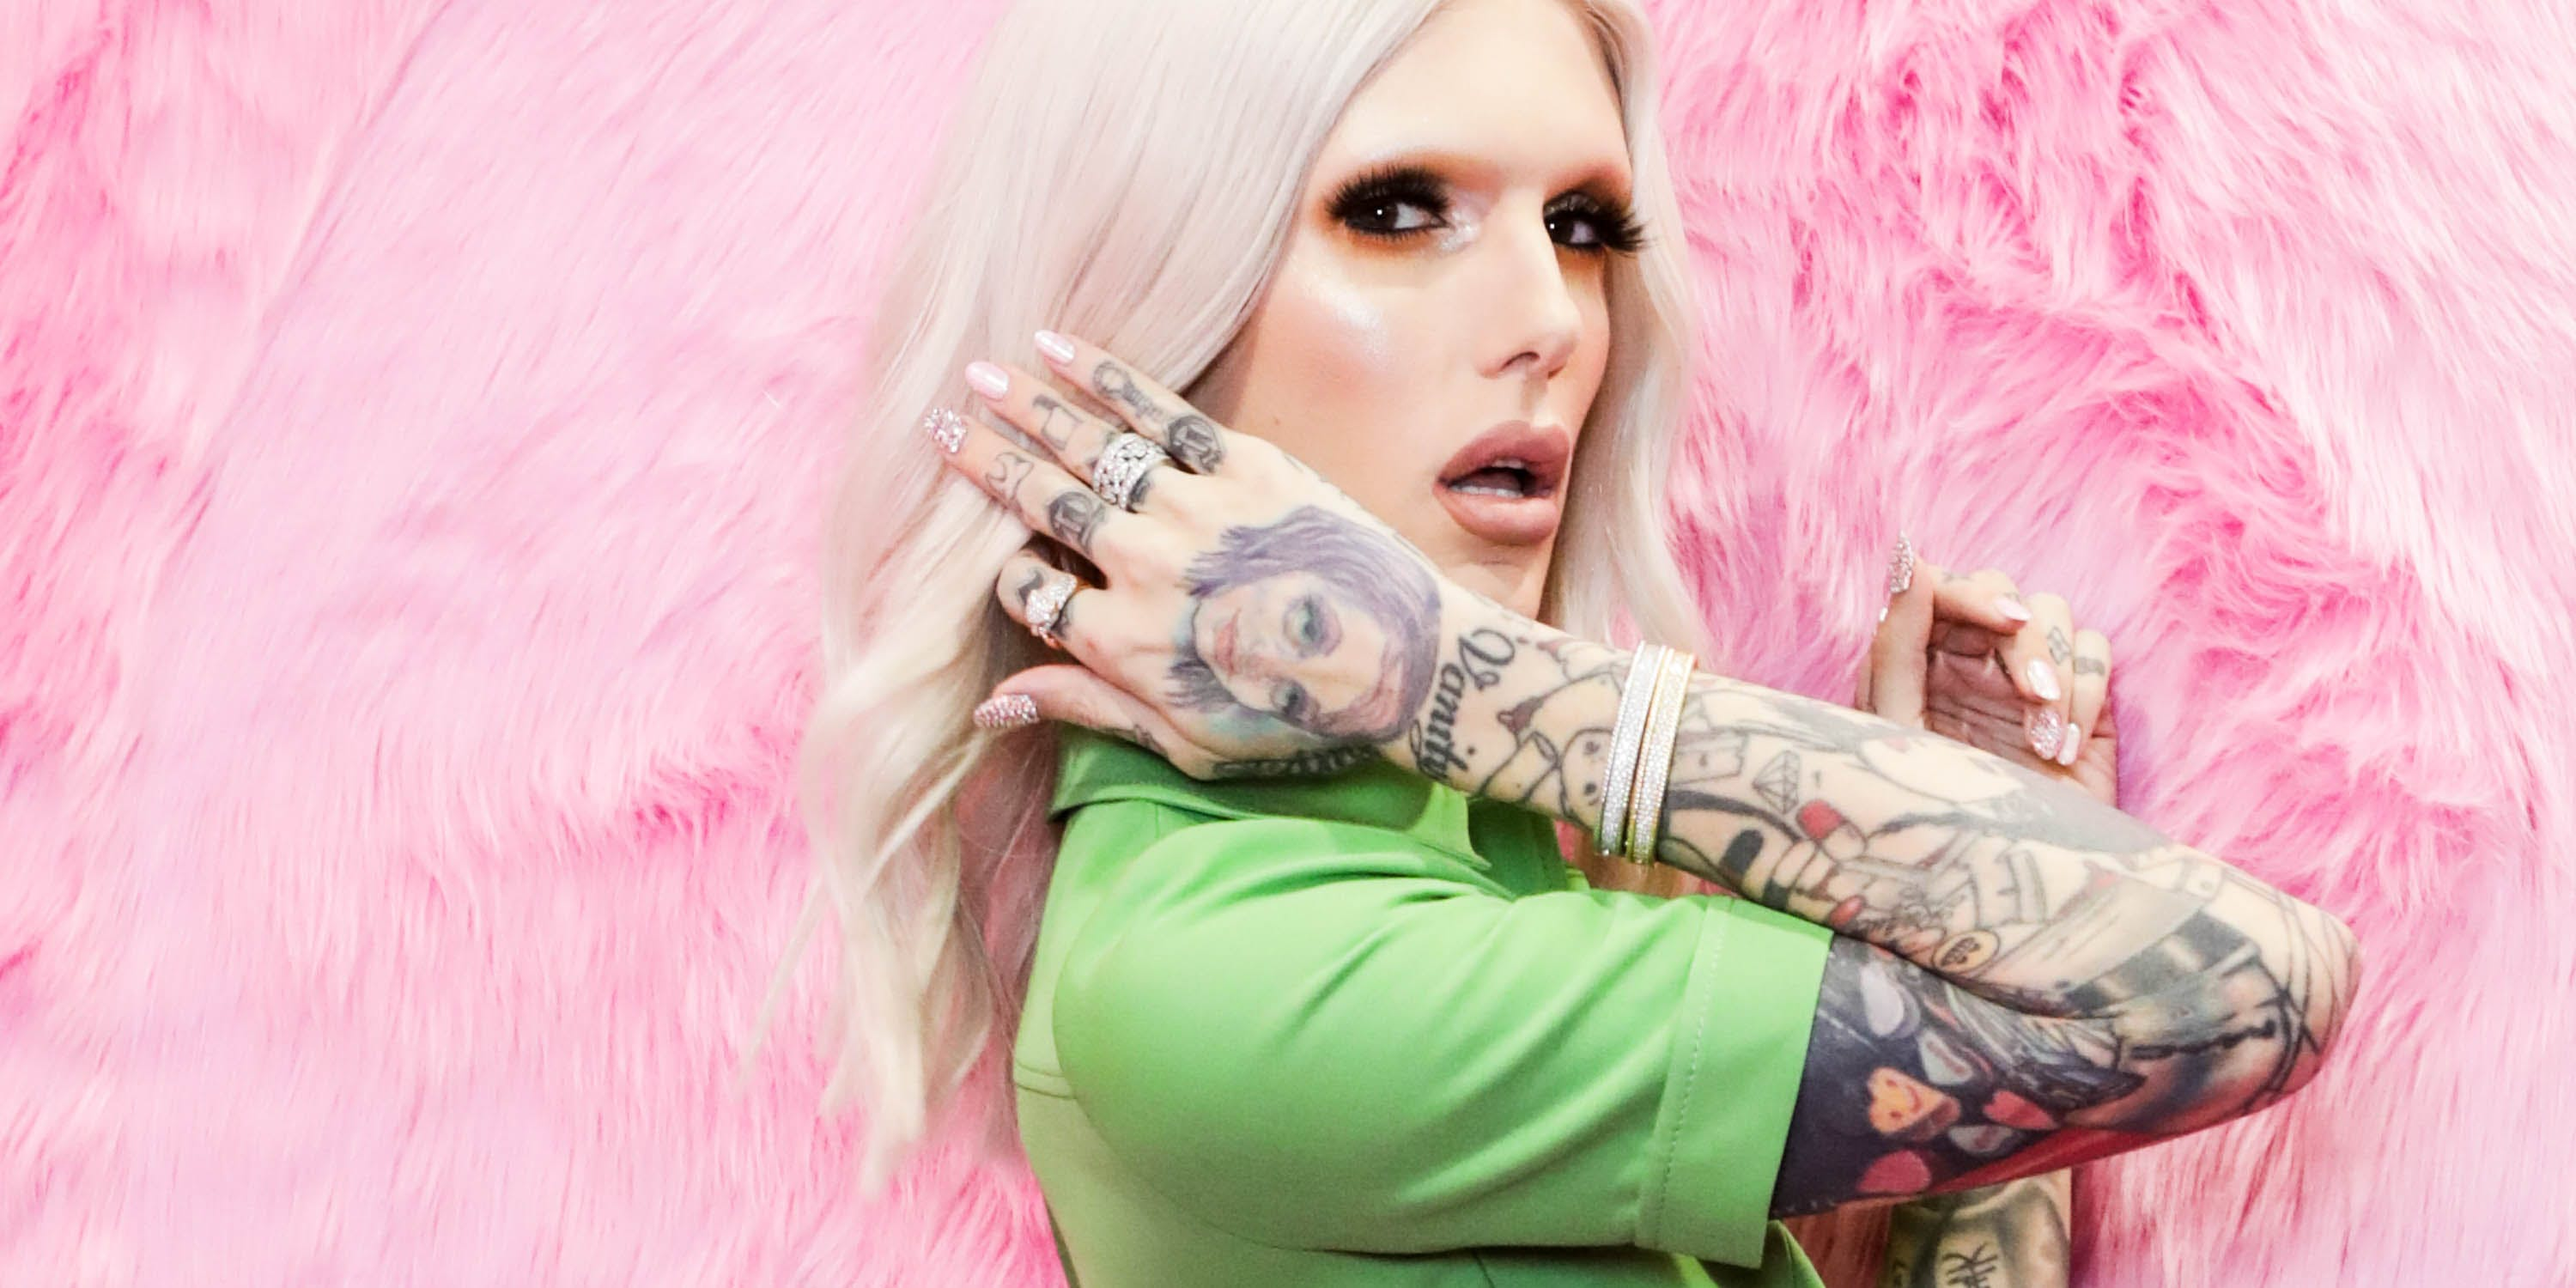 Jeffree Star is the entering the cannabis space.